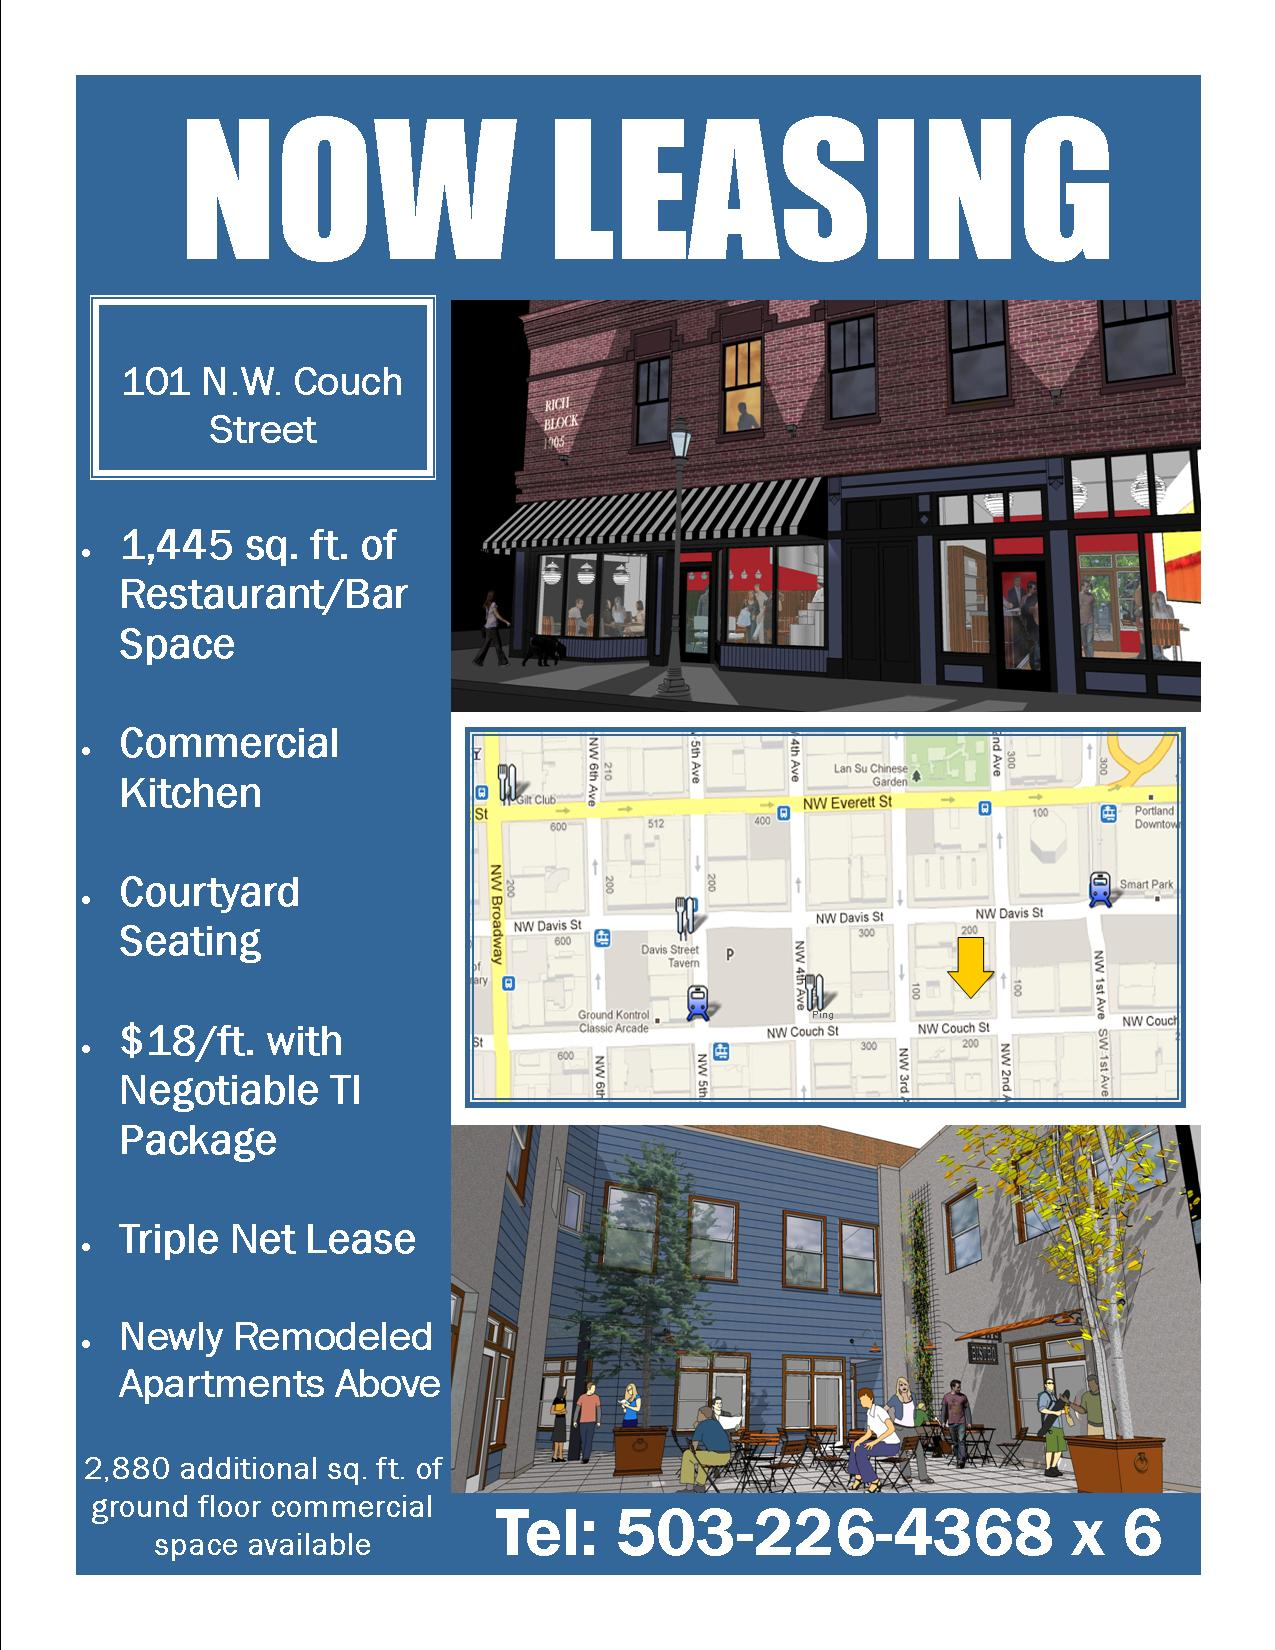 Innovative Housing Inc mercial Space Available in Old Town